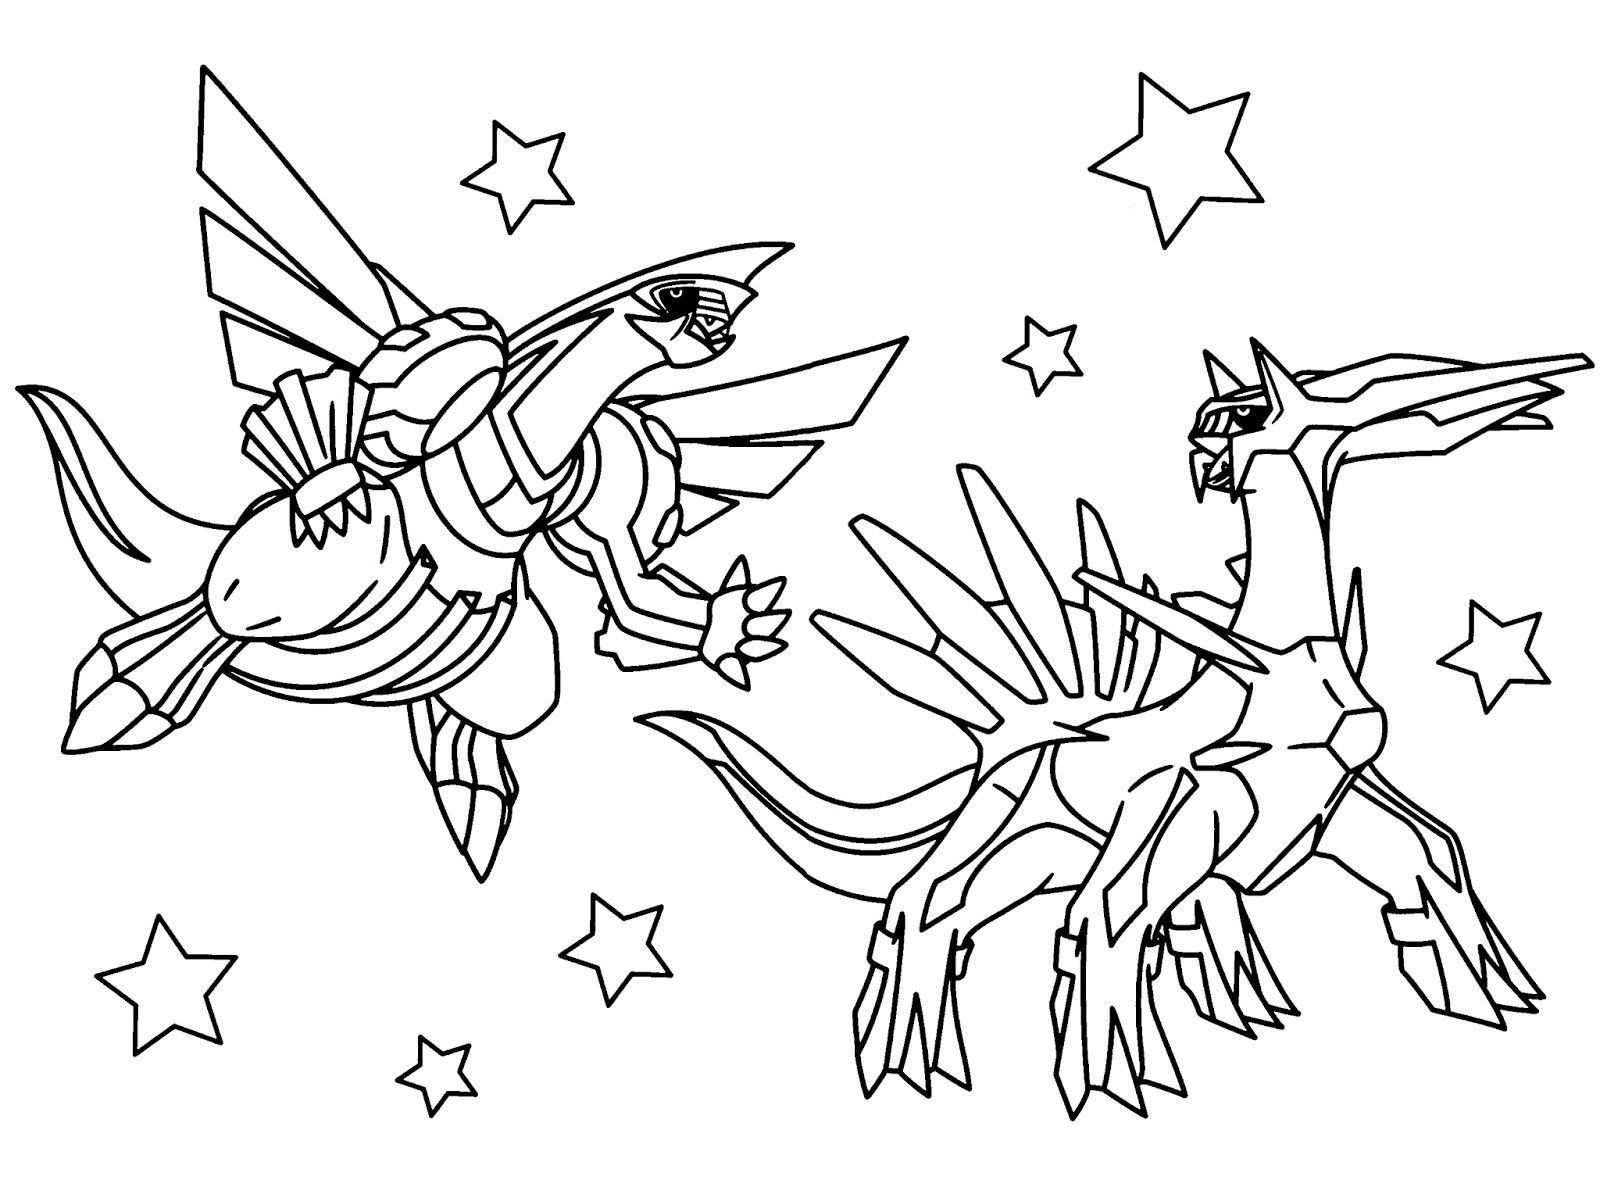 Legendary Pokemon Coloring Pages Best Of Pokemon Coloring Pages